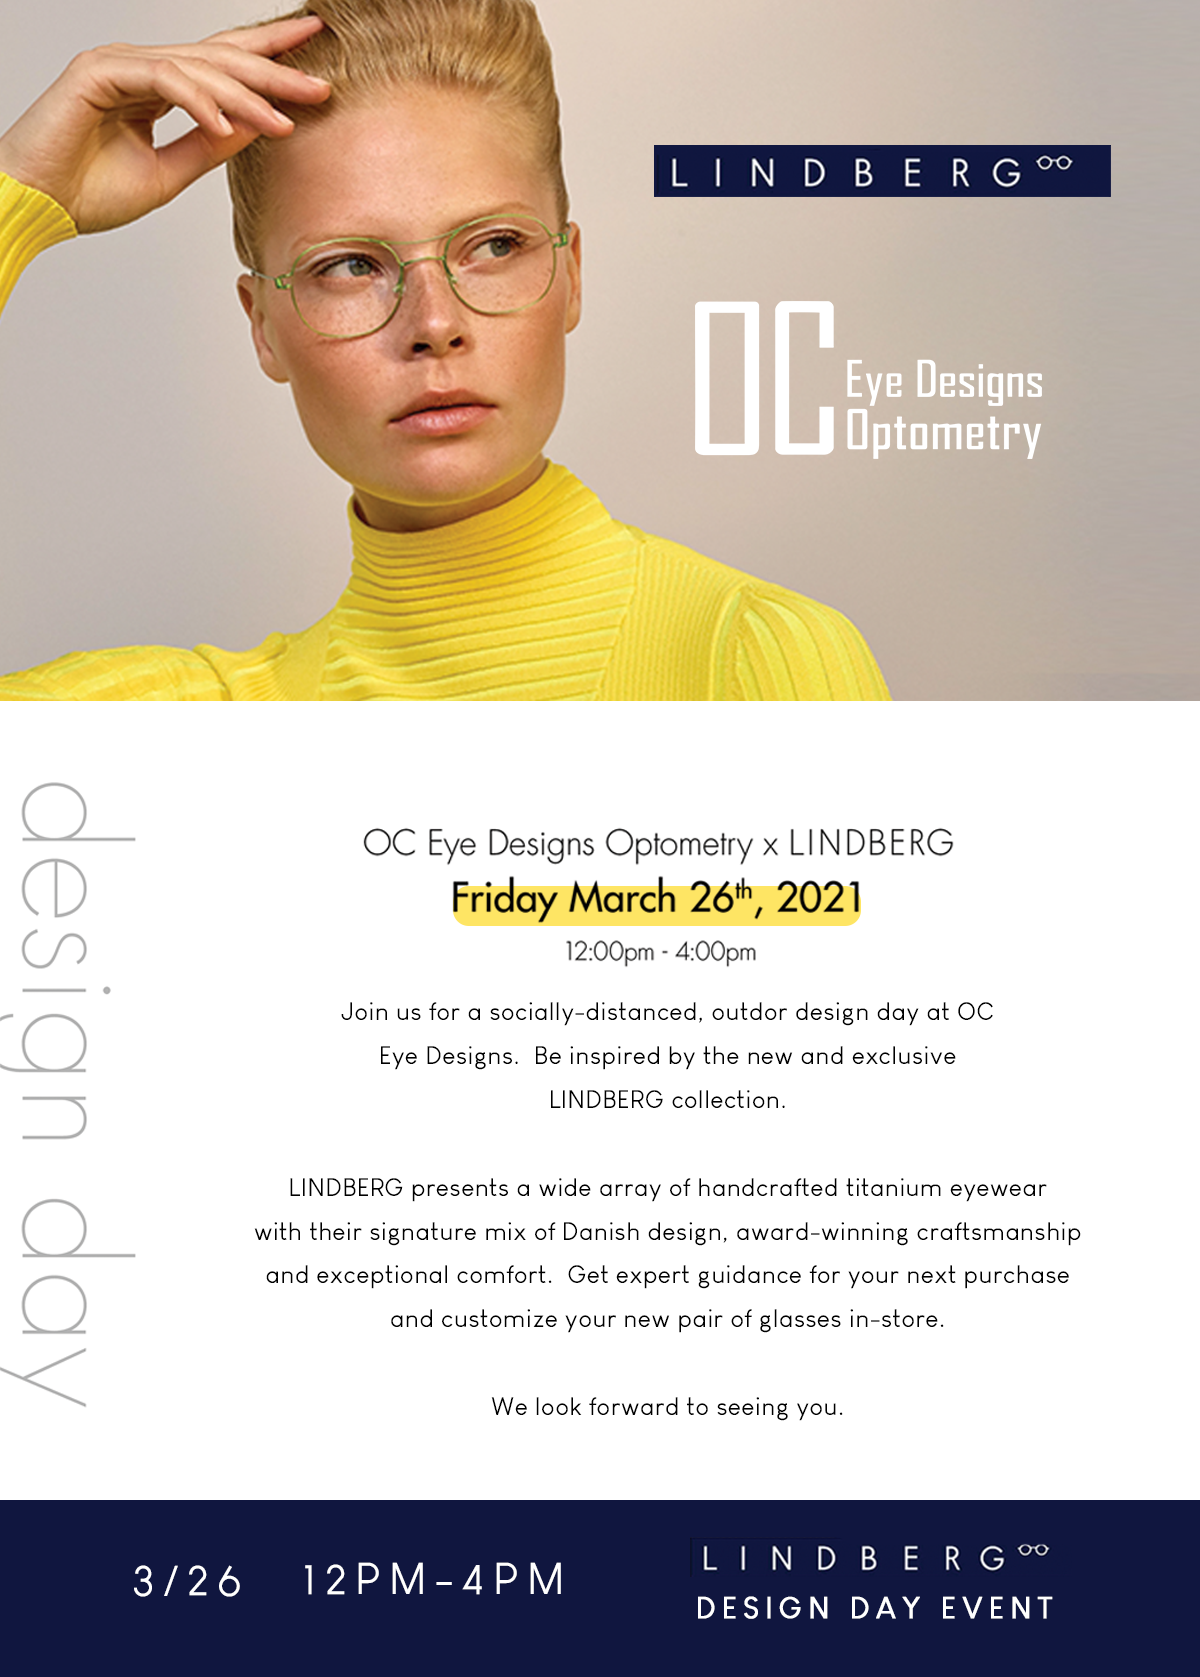 Lindberg eyewear design event